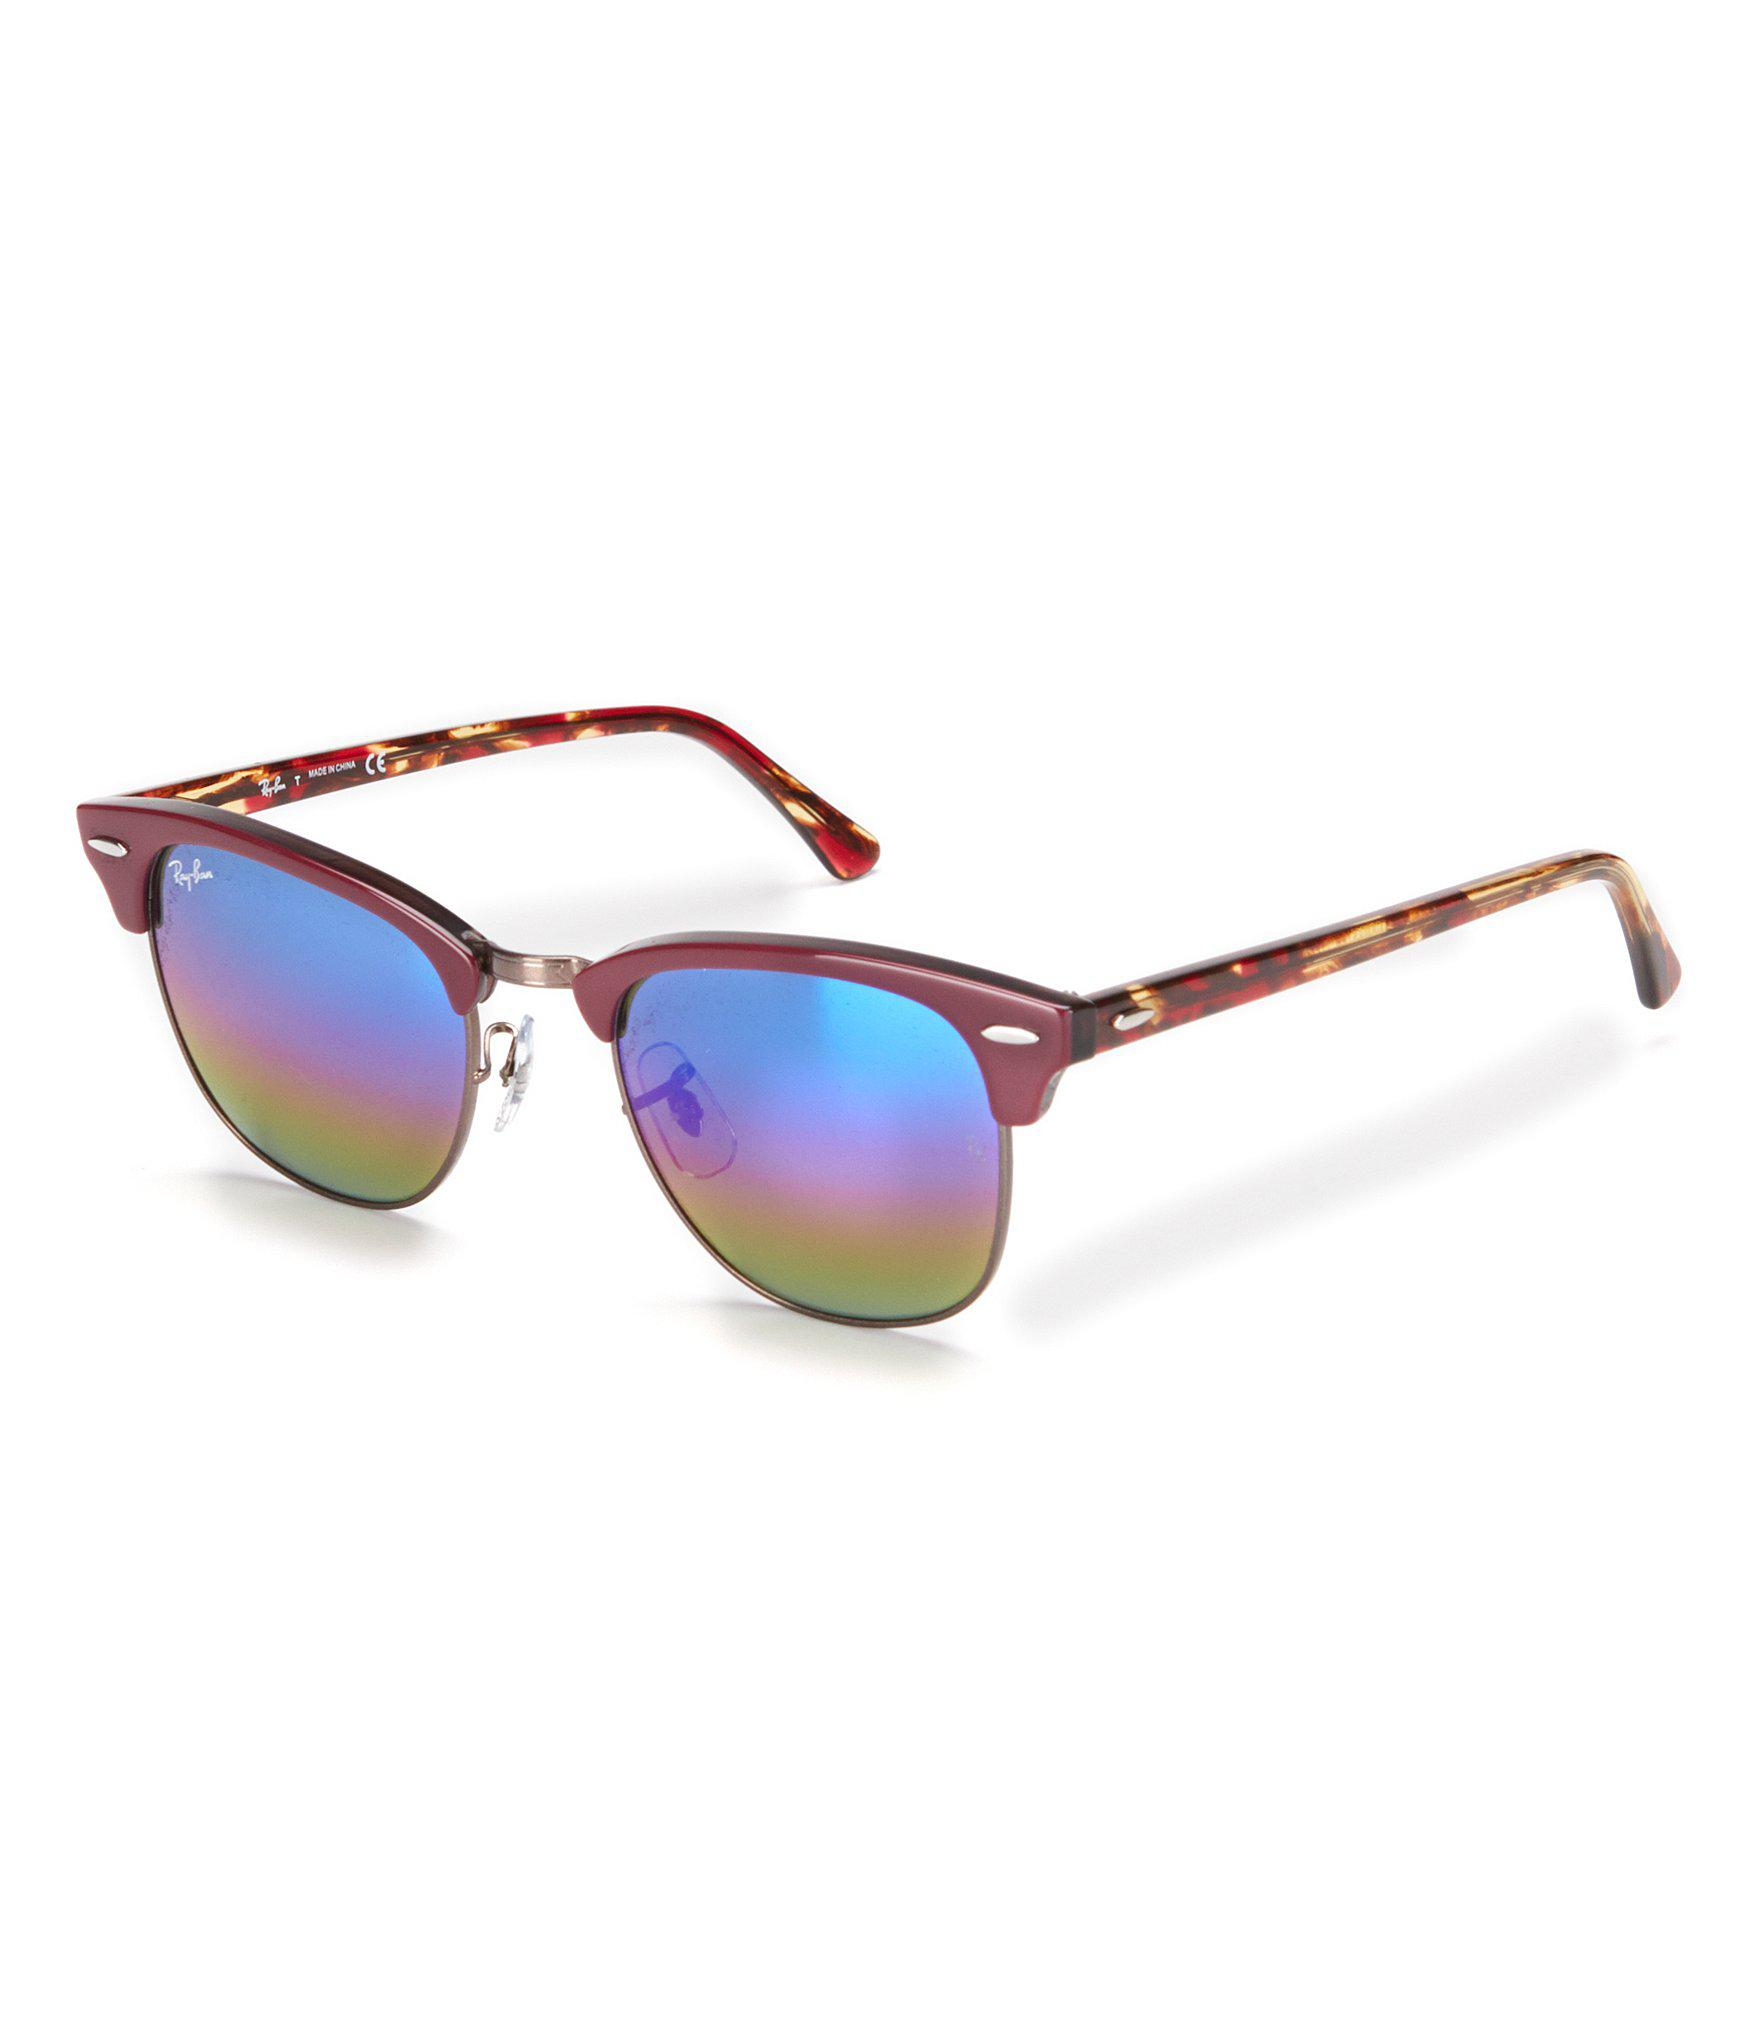 8b3aafa81c0 Lyst - Ray-Ban Clubmaster Classic Uv Protection Sunglasses in Red ...